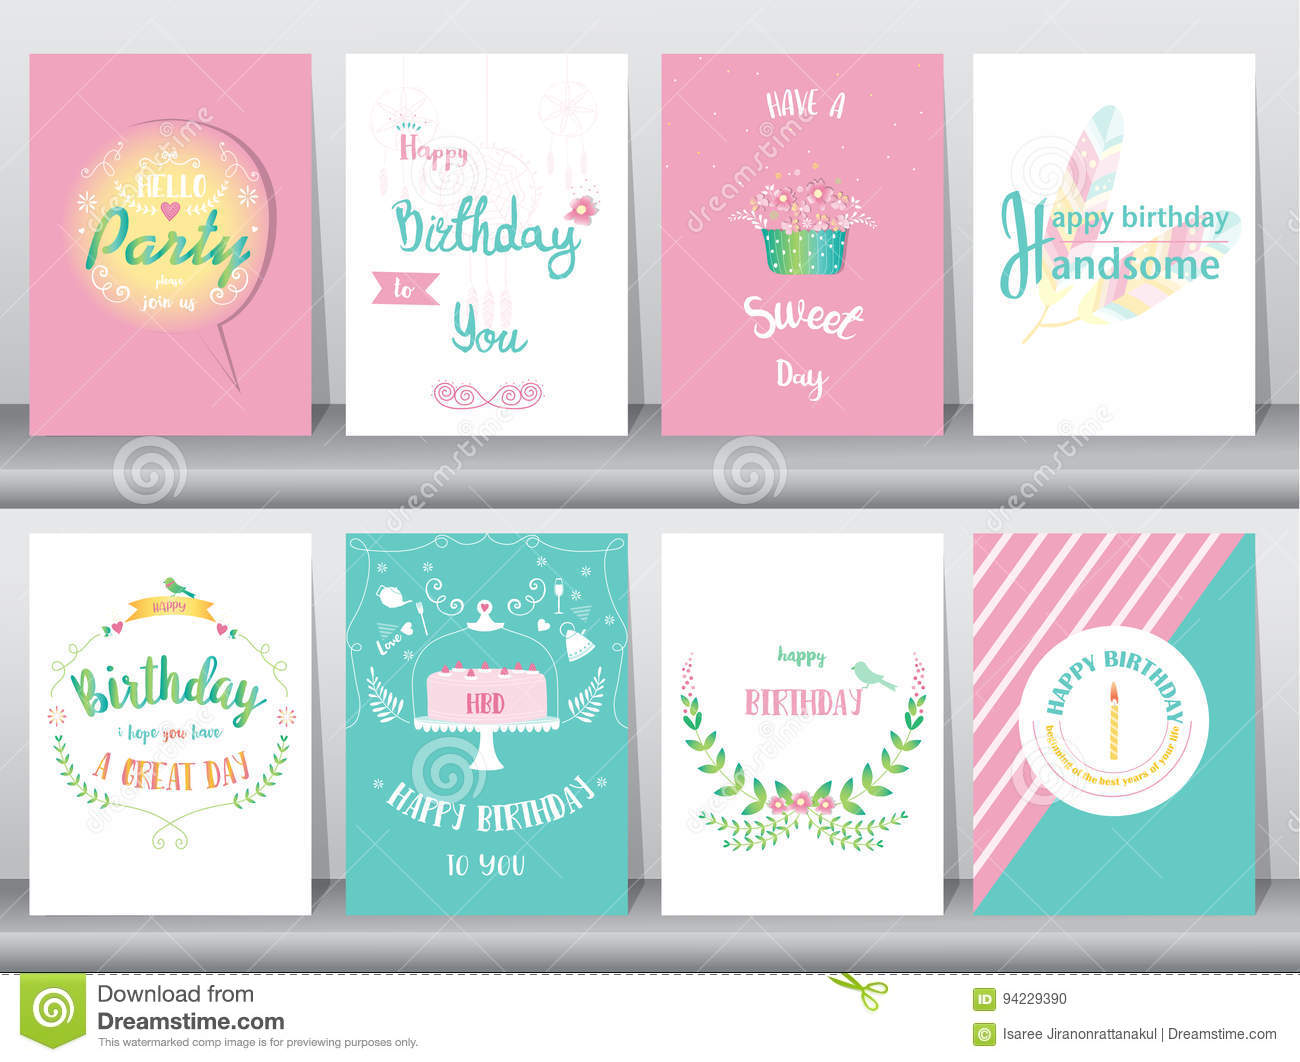 Set of birthday cards,poster,template,greeting cards,sweet,balloons,cake,feather,Vector illustrations